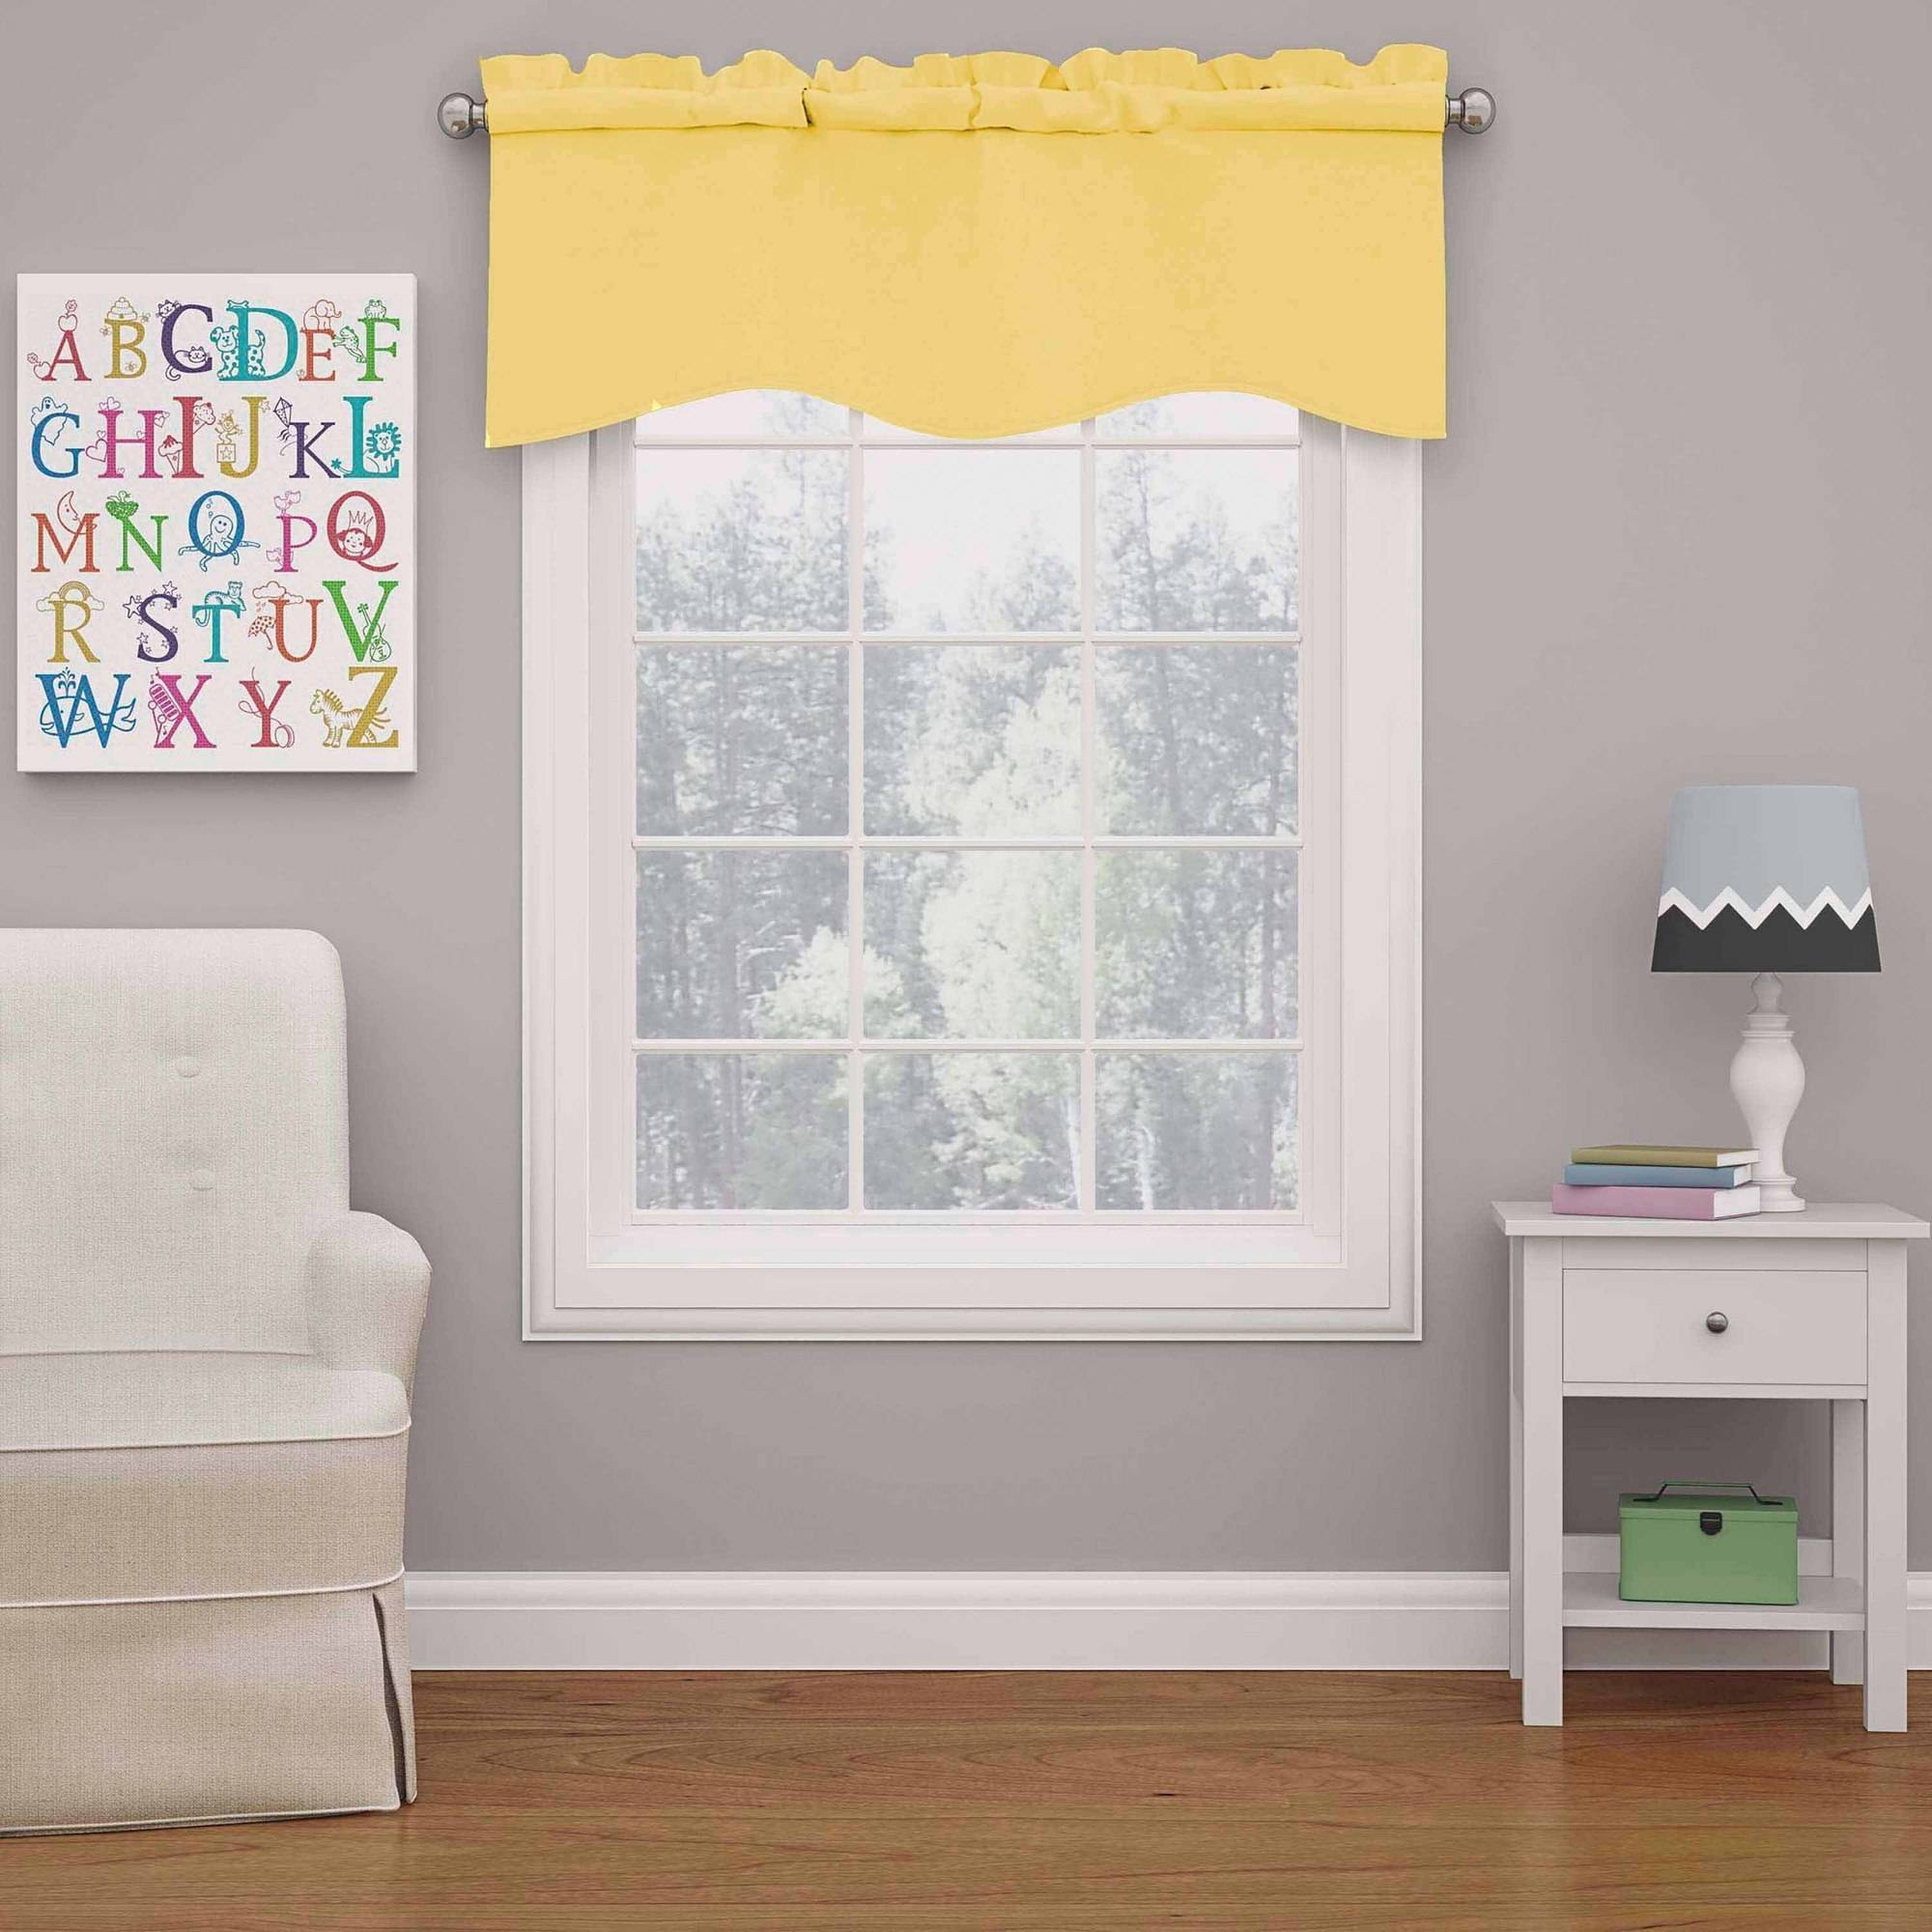 Eclipse Kendall Blackout Wave Girls Bedroom Curtain Valance by Ellery Homestyles